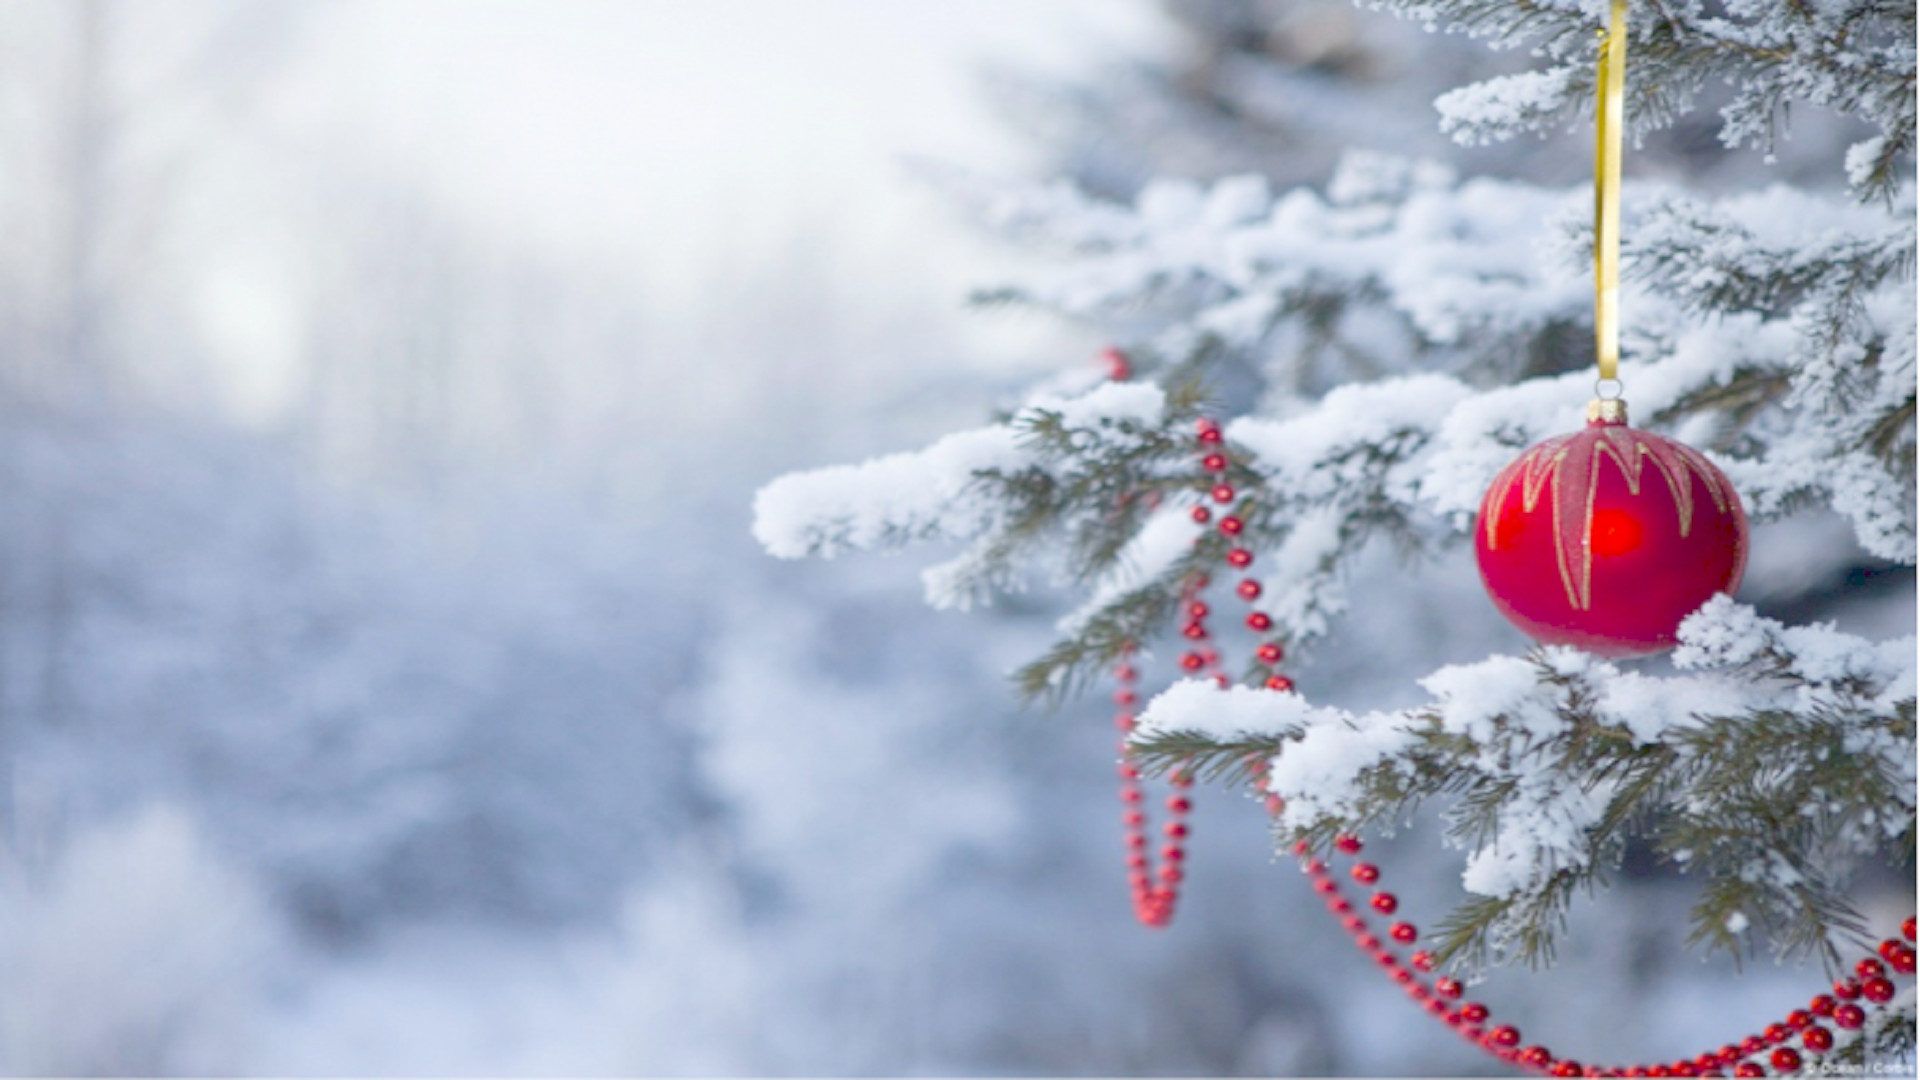 Xmas Wallpapers (66+ Images